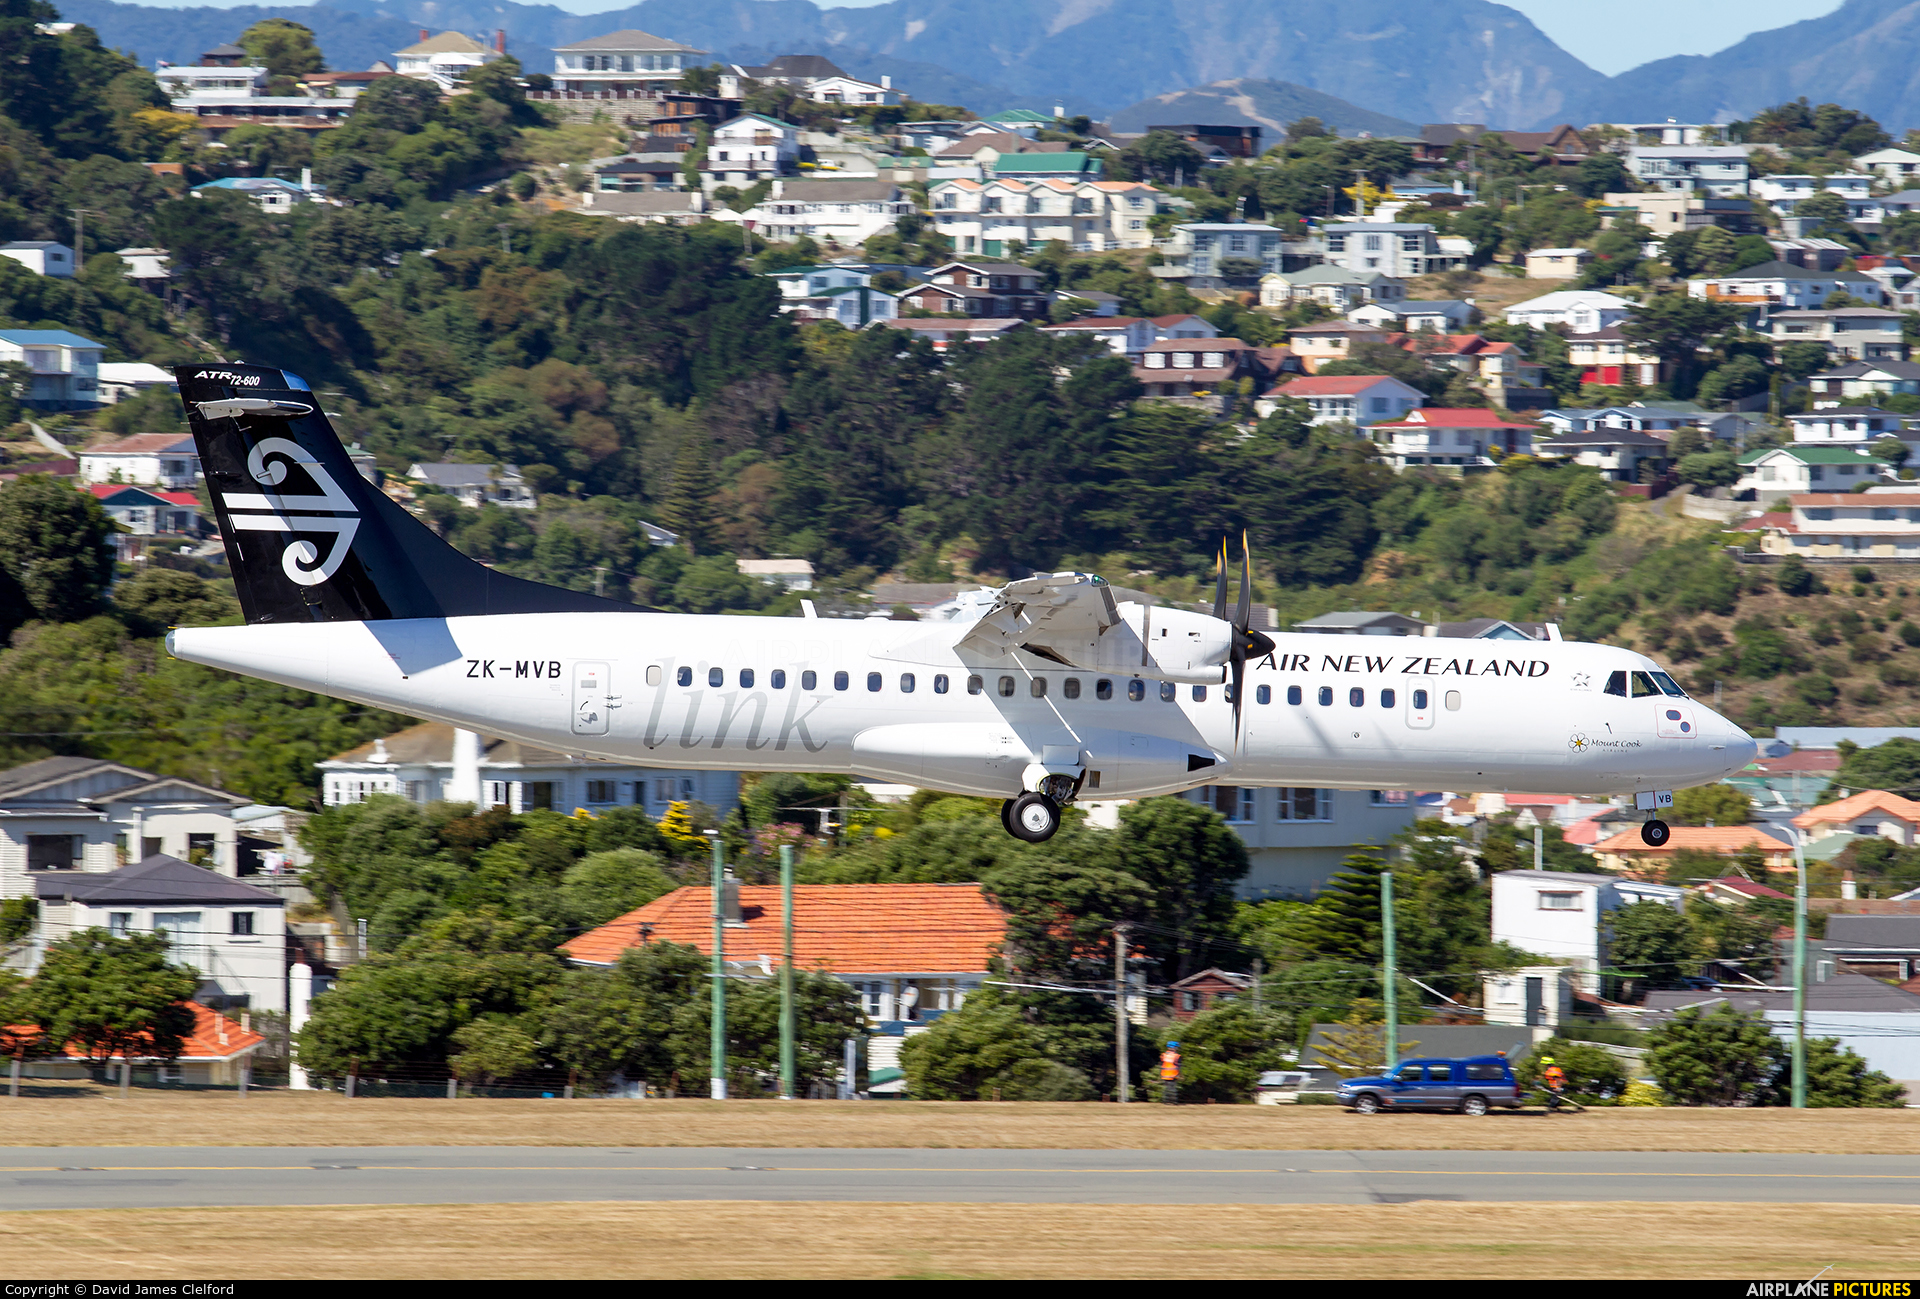 Air New Zealand Link - Mount Cook Airline ZK-MVB aircraft at Wellington Intl